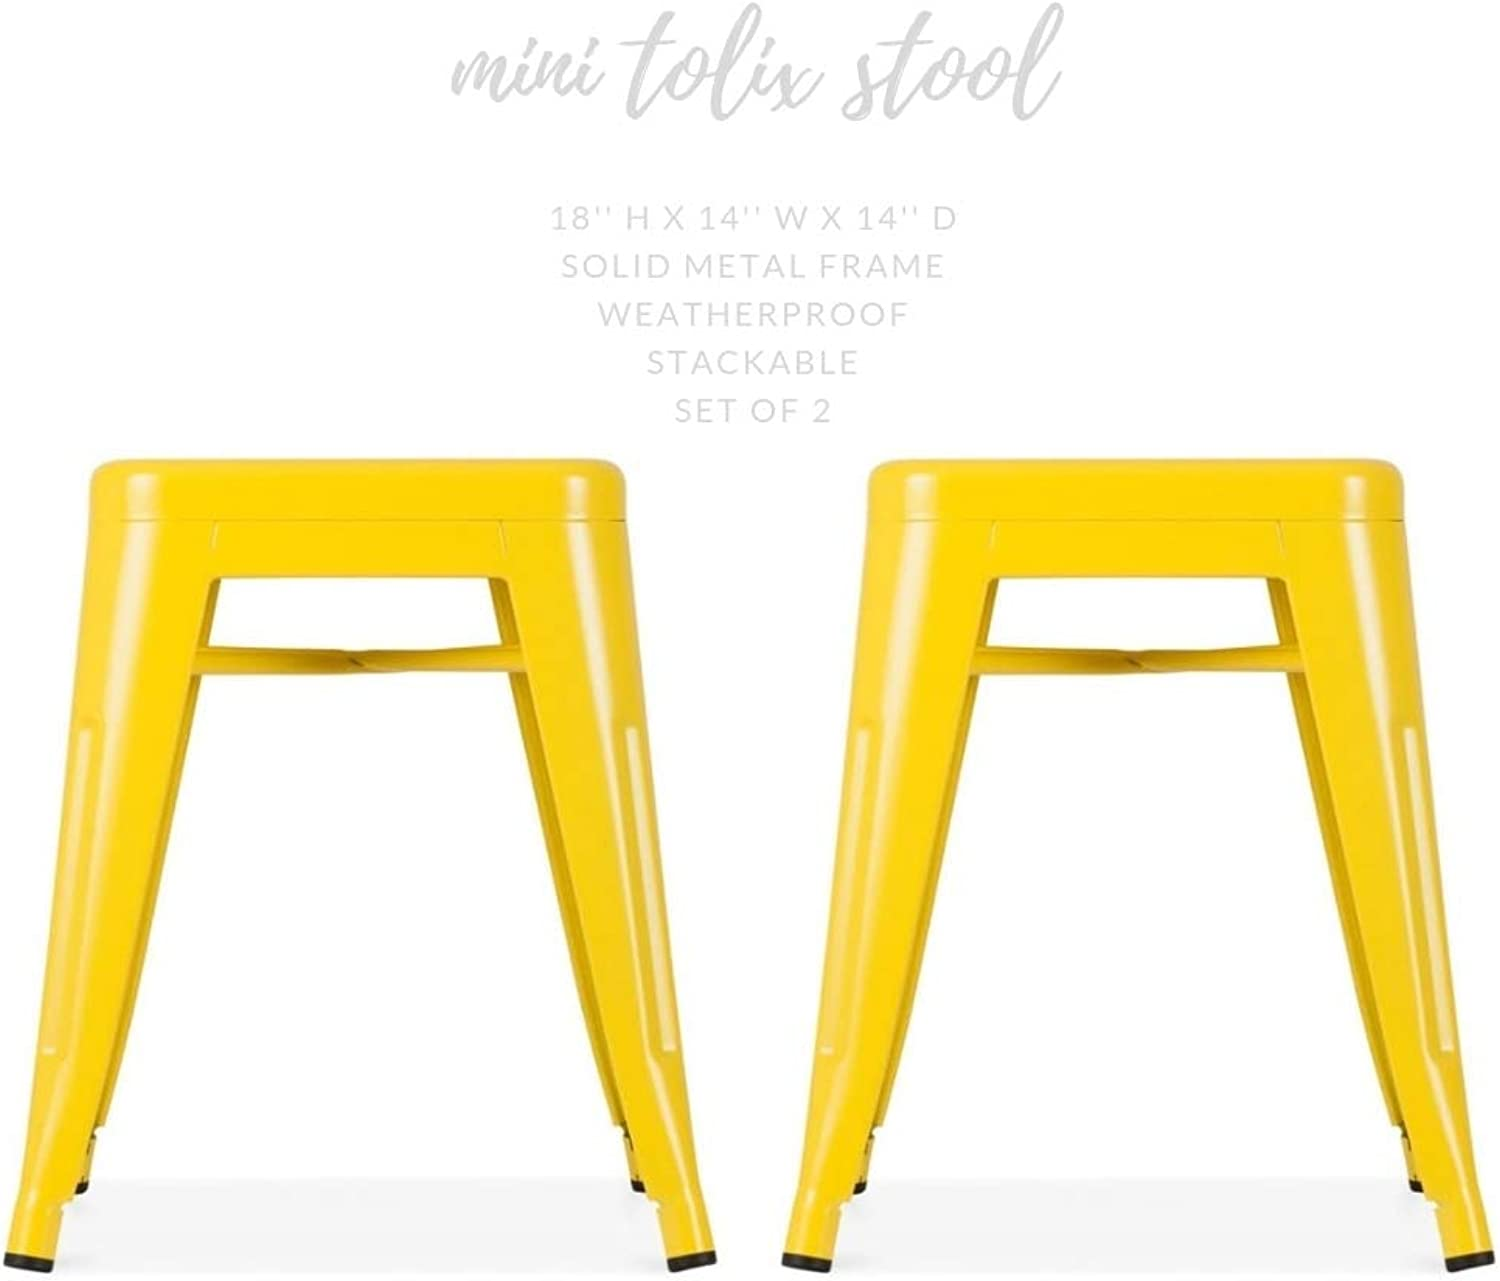 Take Me Home Furniture Mini Tolix Stool Backless Metal, Industrial Style Stool 18  High in Yellow, Industrial Tolix Metal Set of 2, Perfect for Kids